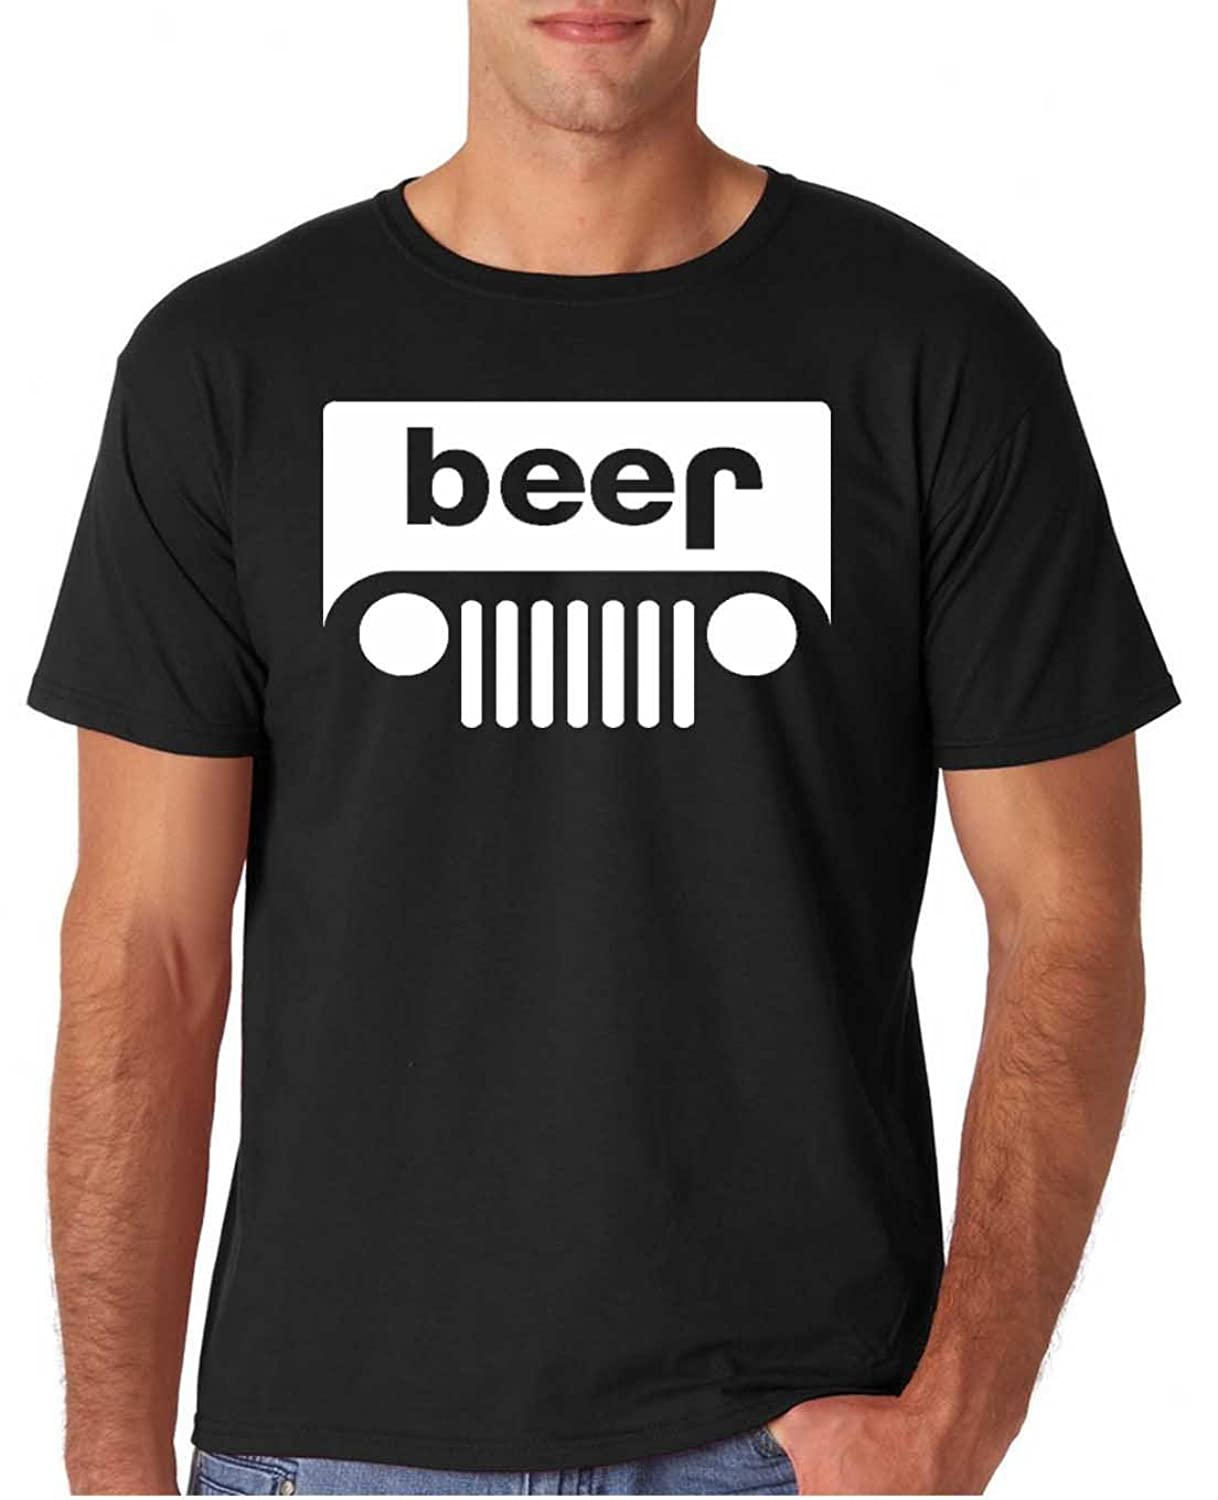 Adult Funny Beer Drinking T Shirt